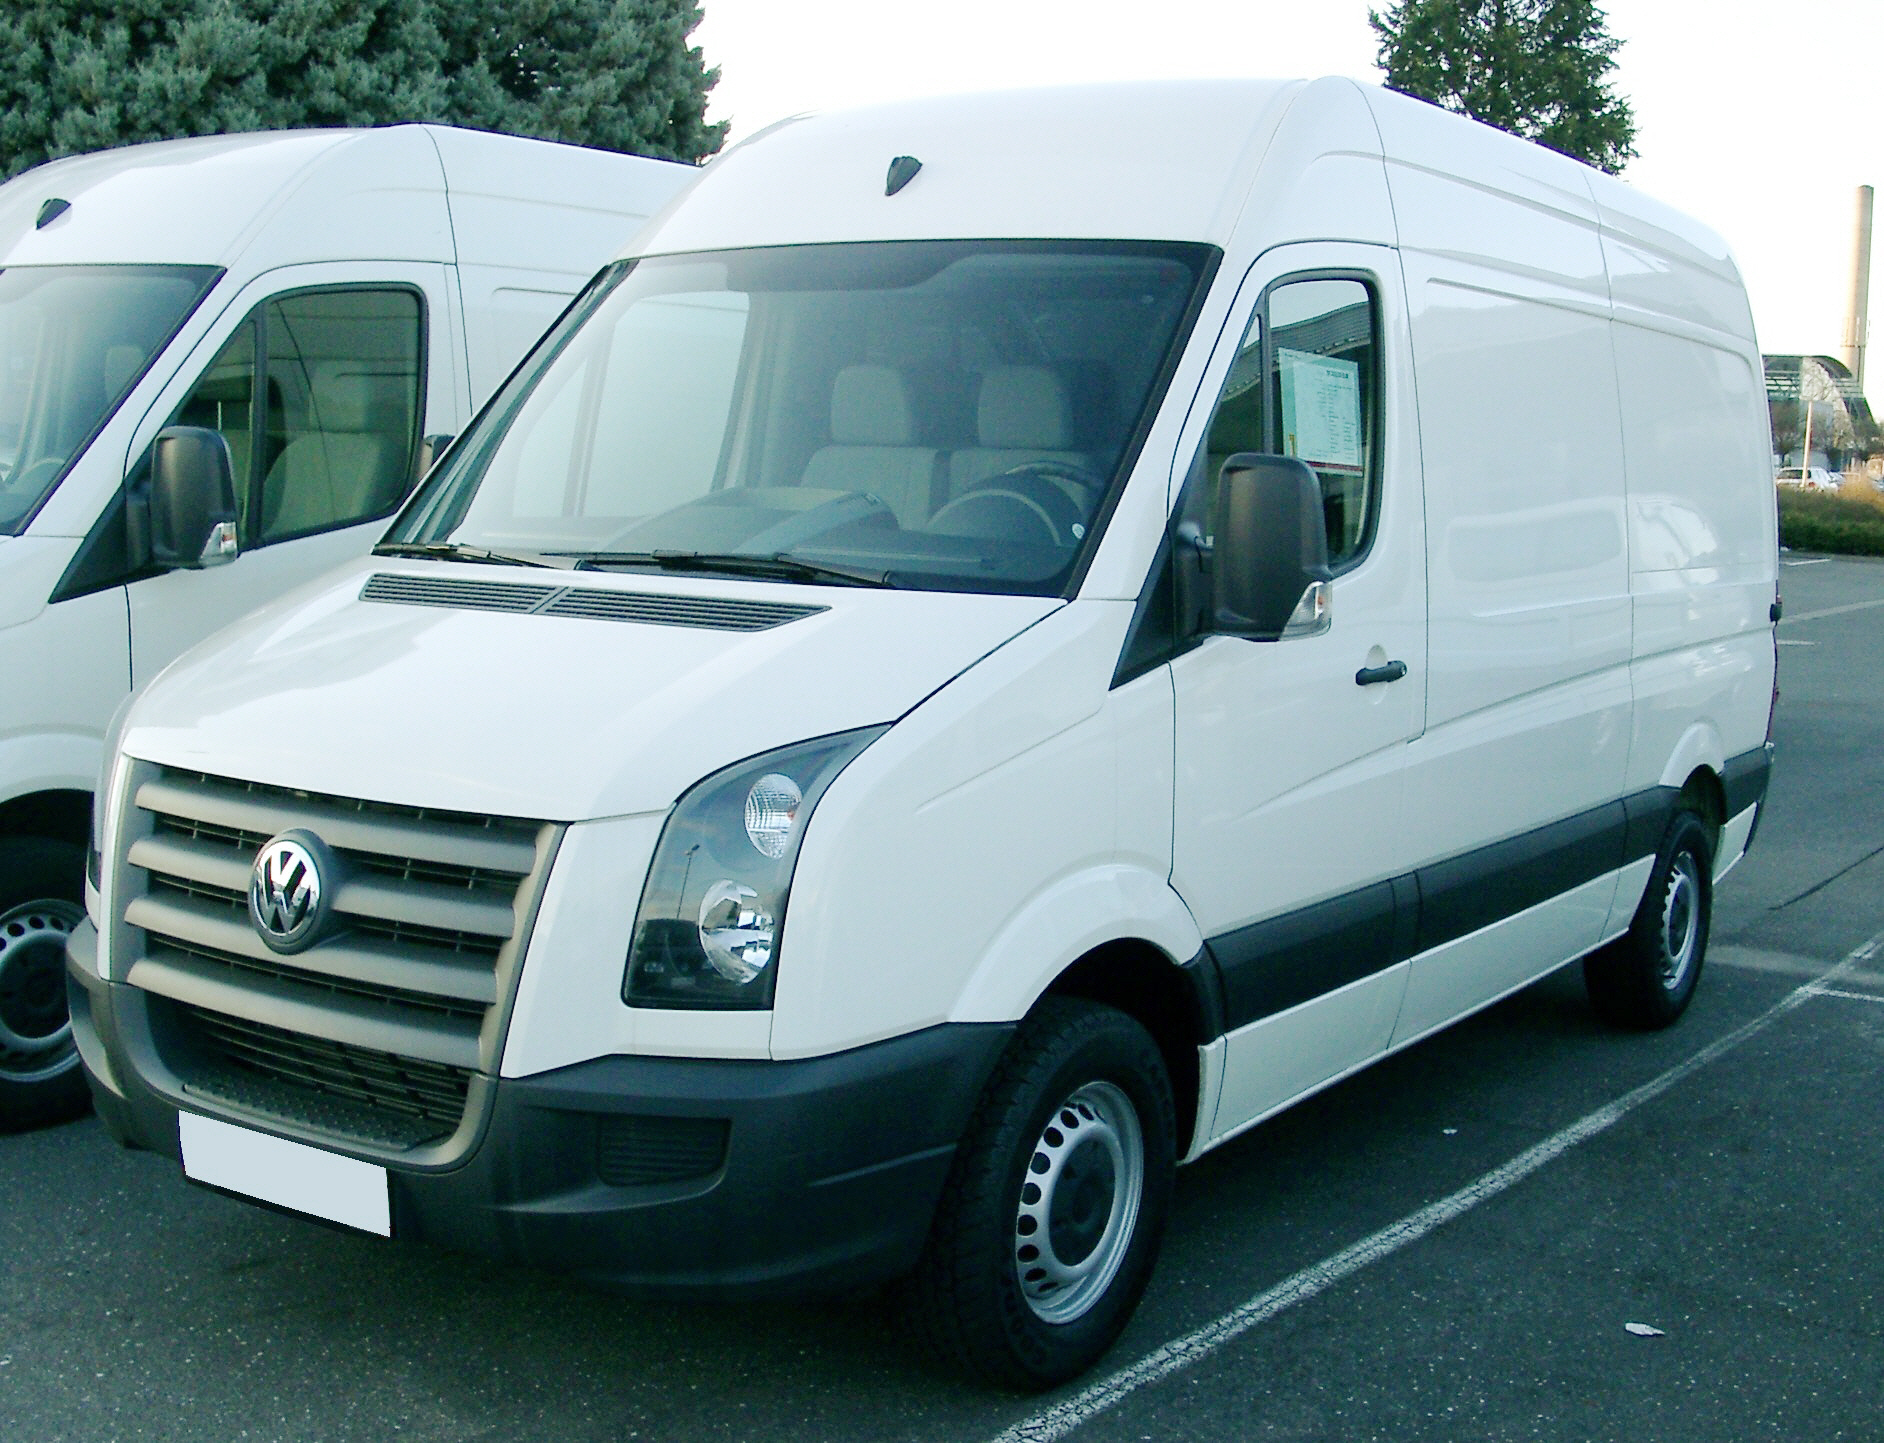 VW Crafter image #1